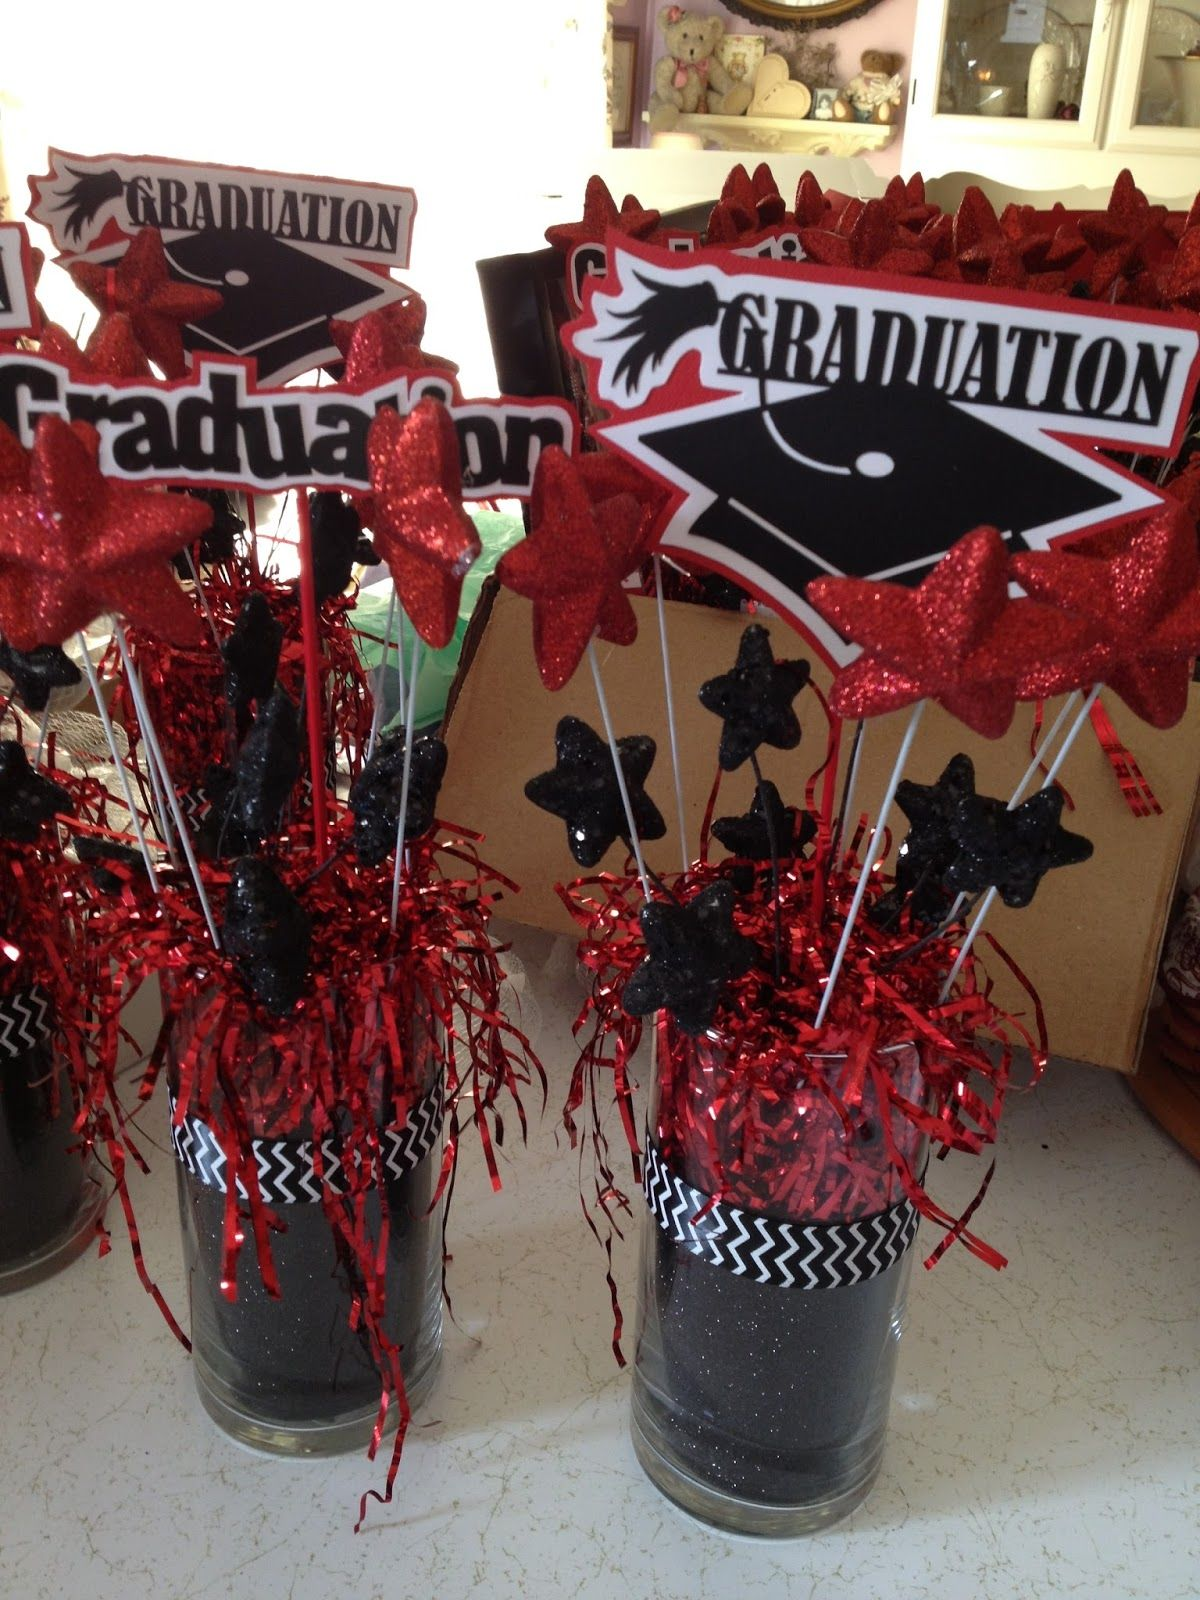 Graduation centerpiece ideas to make google search